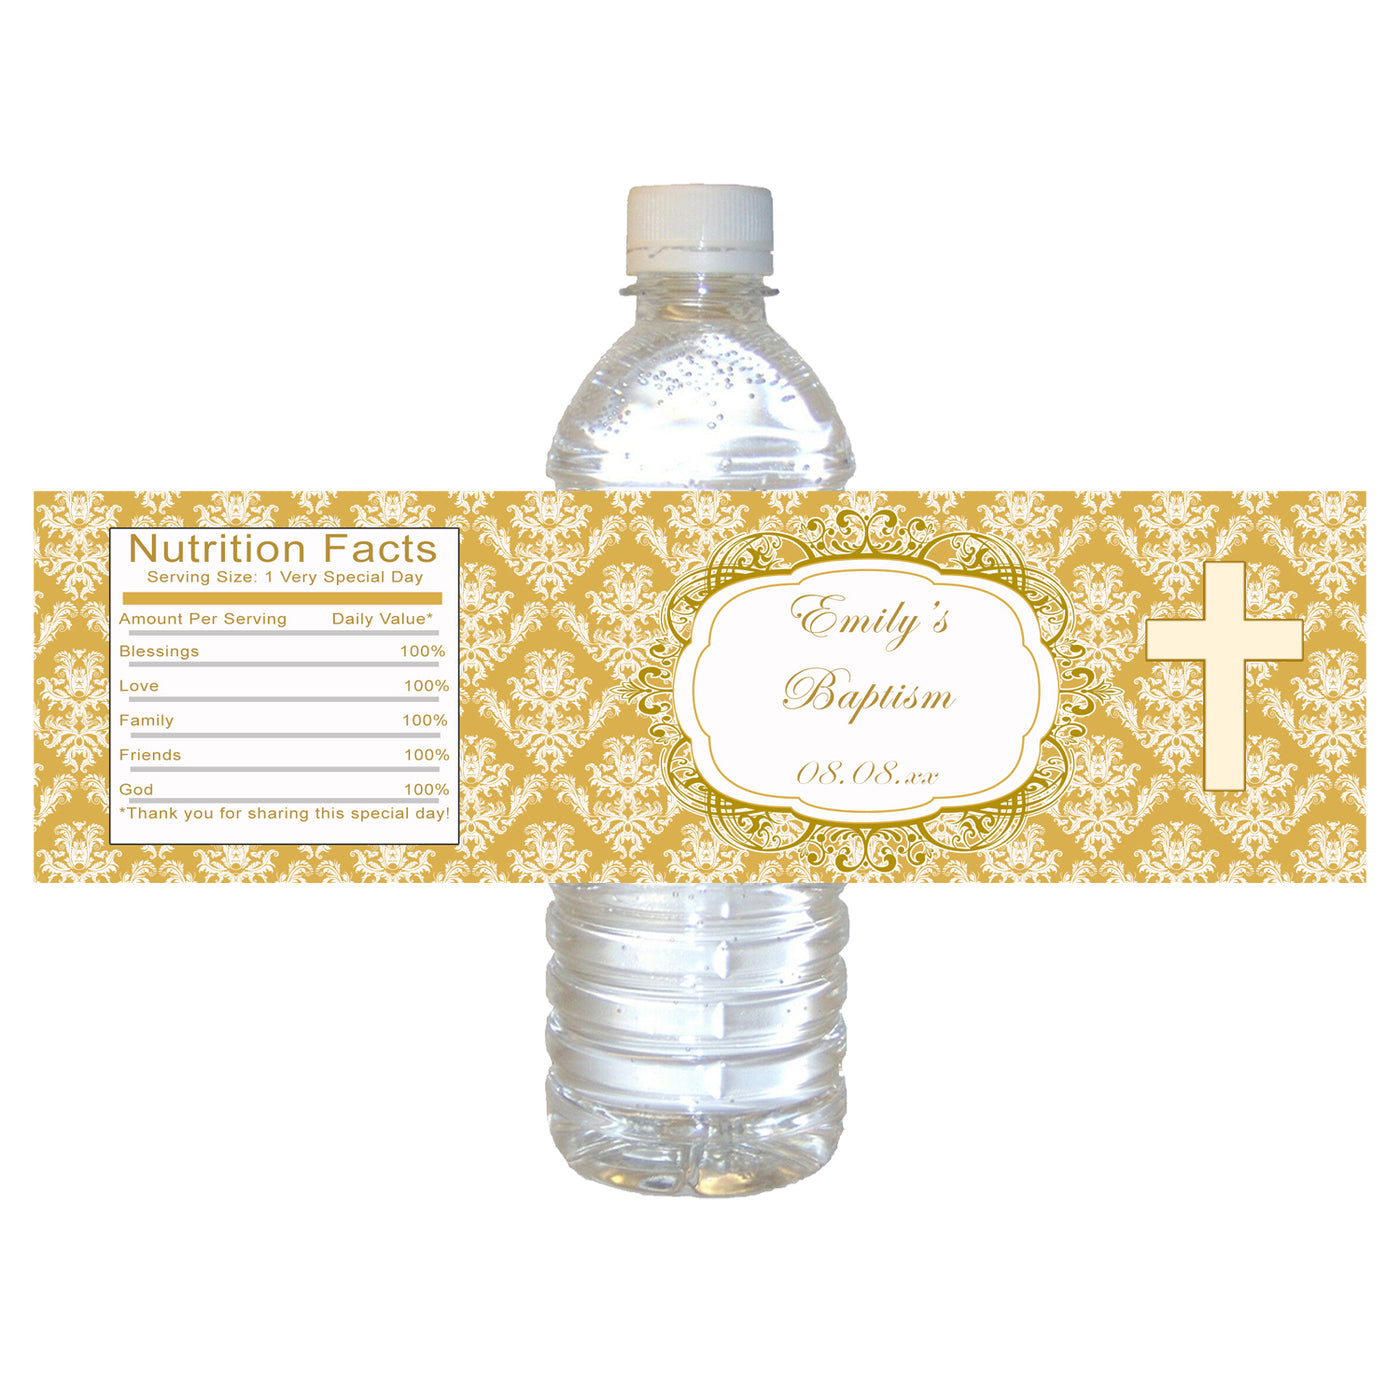 graphic about Printable Bottle Labels titled Bottle labels gold baptism christening woman or boy printable